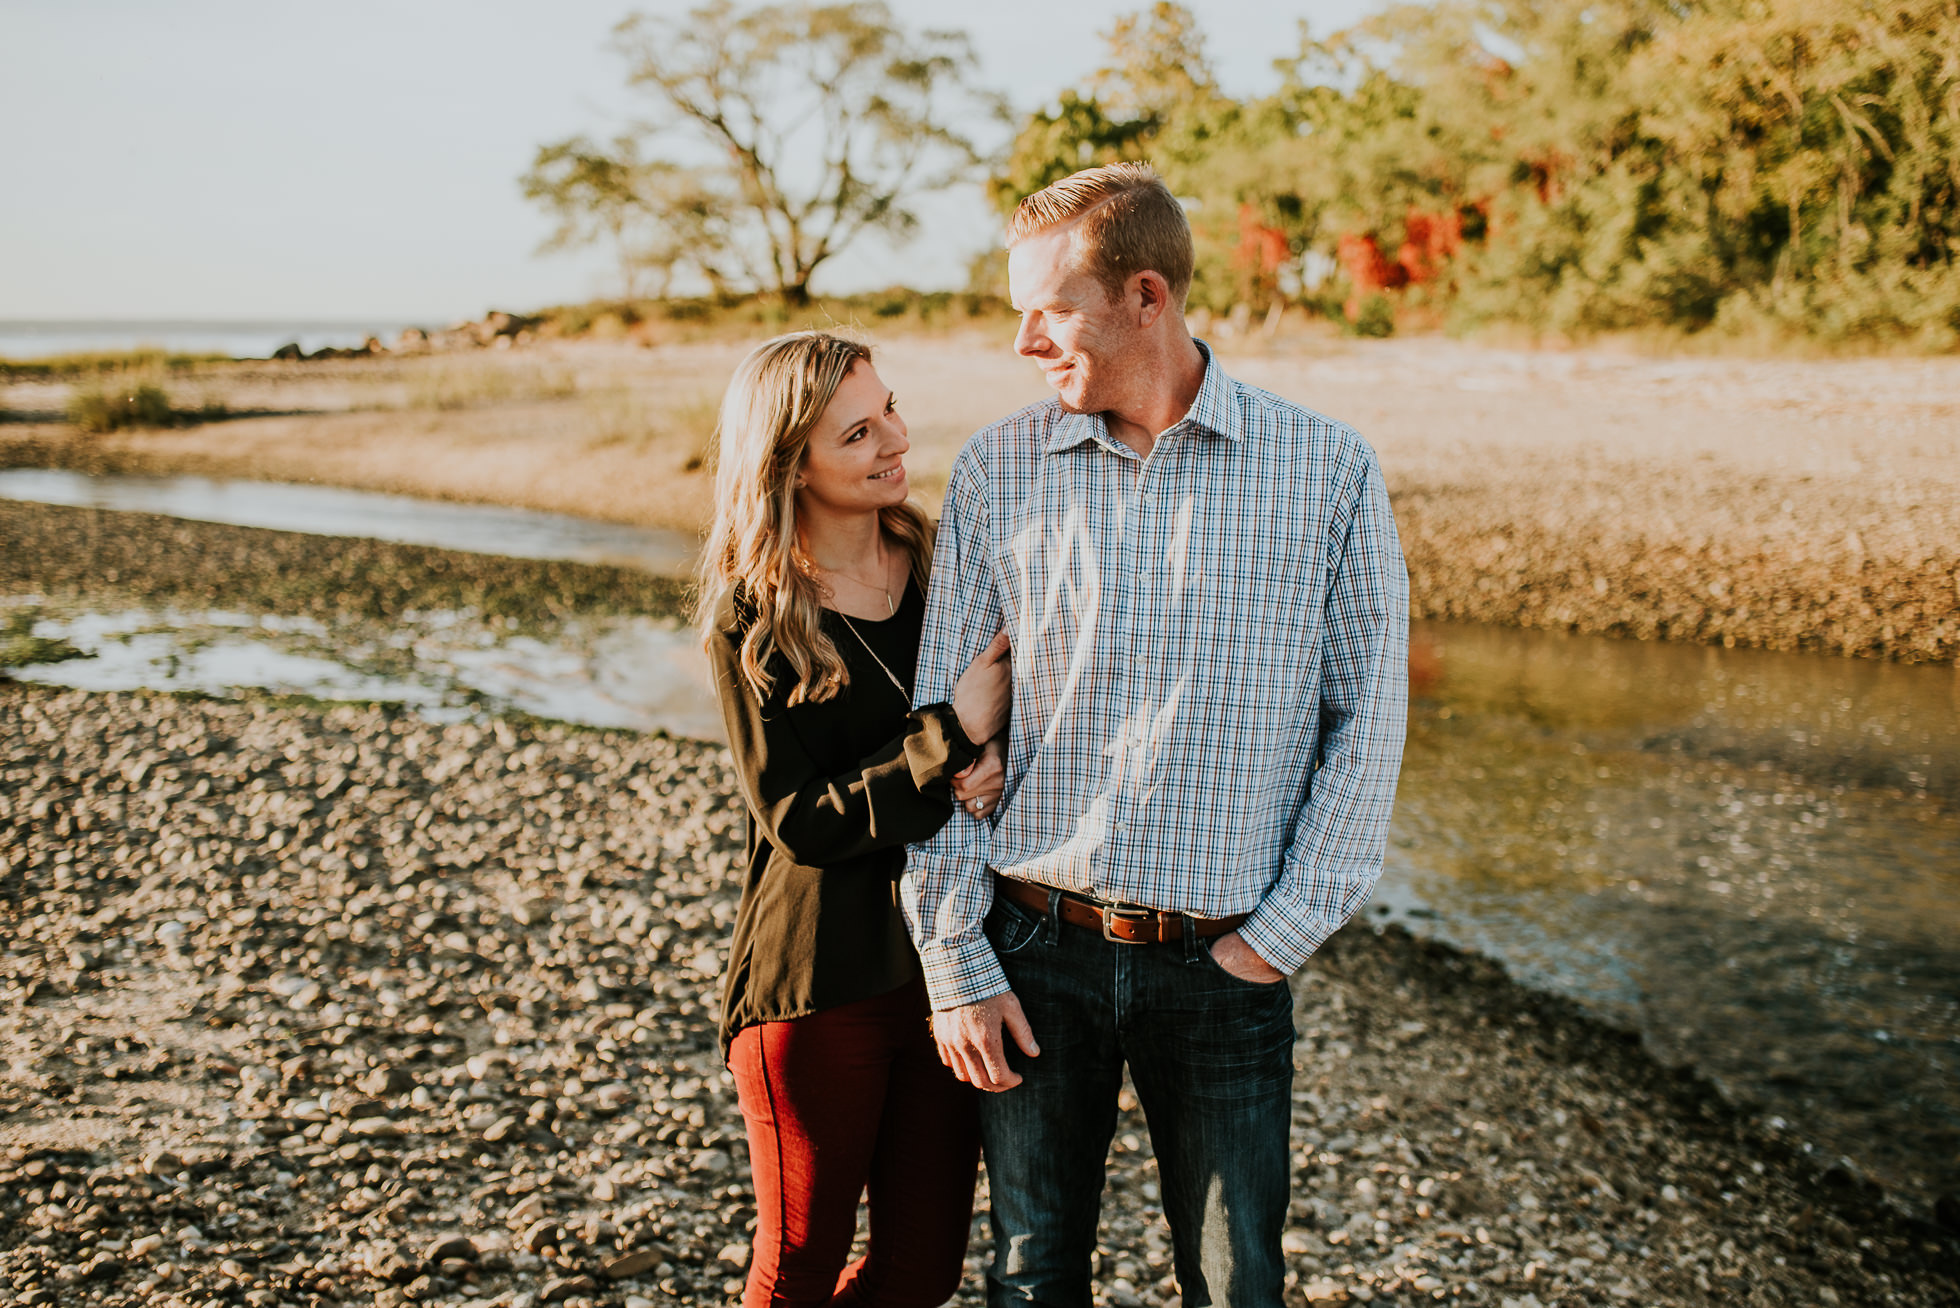 autumn engagement session photographed by Traverse the Tides